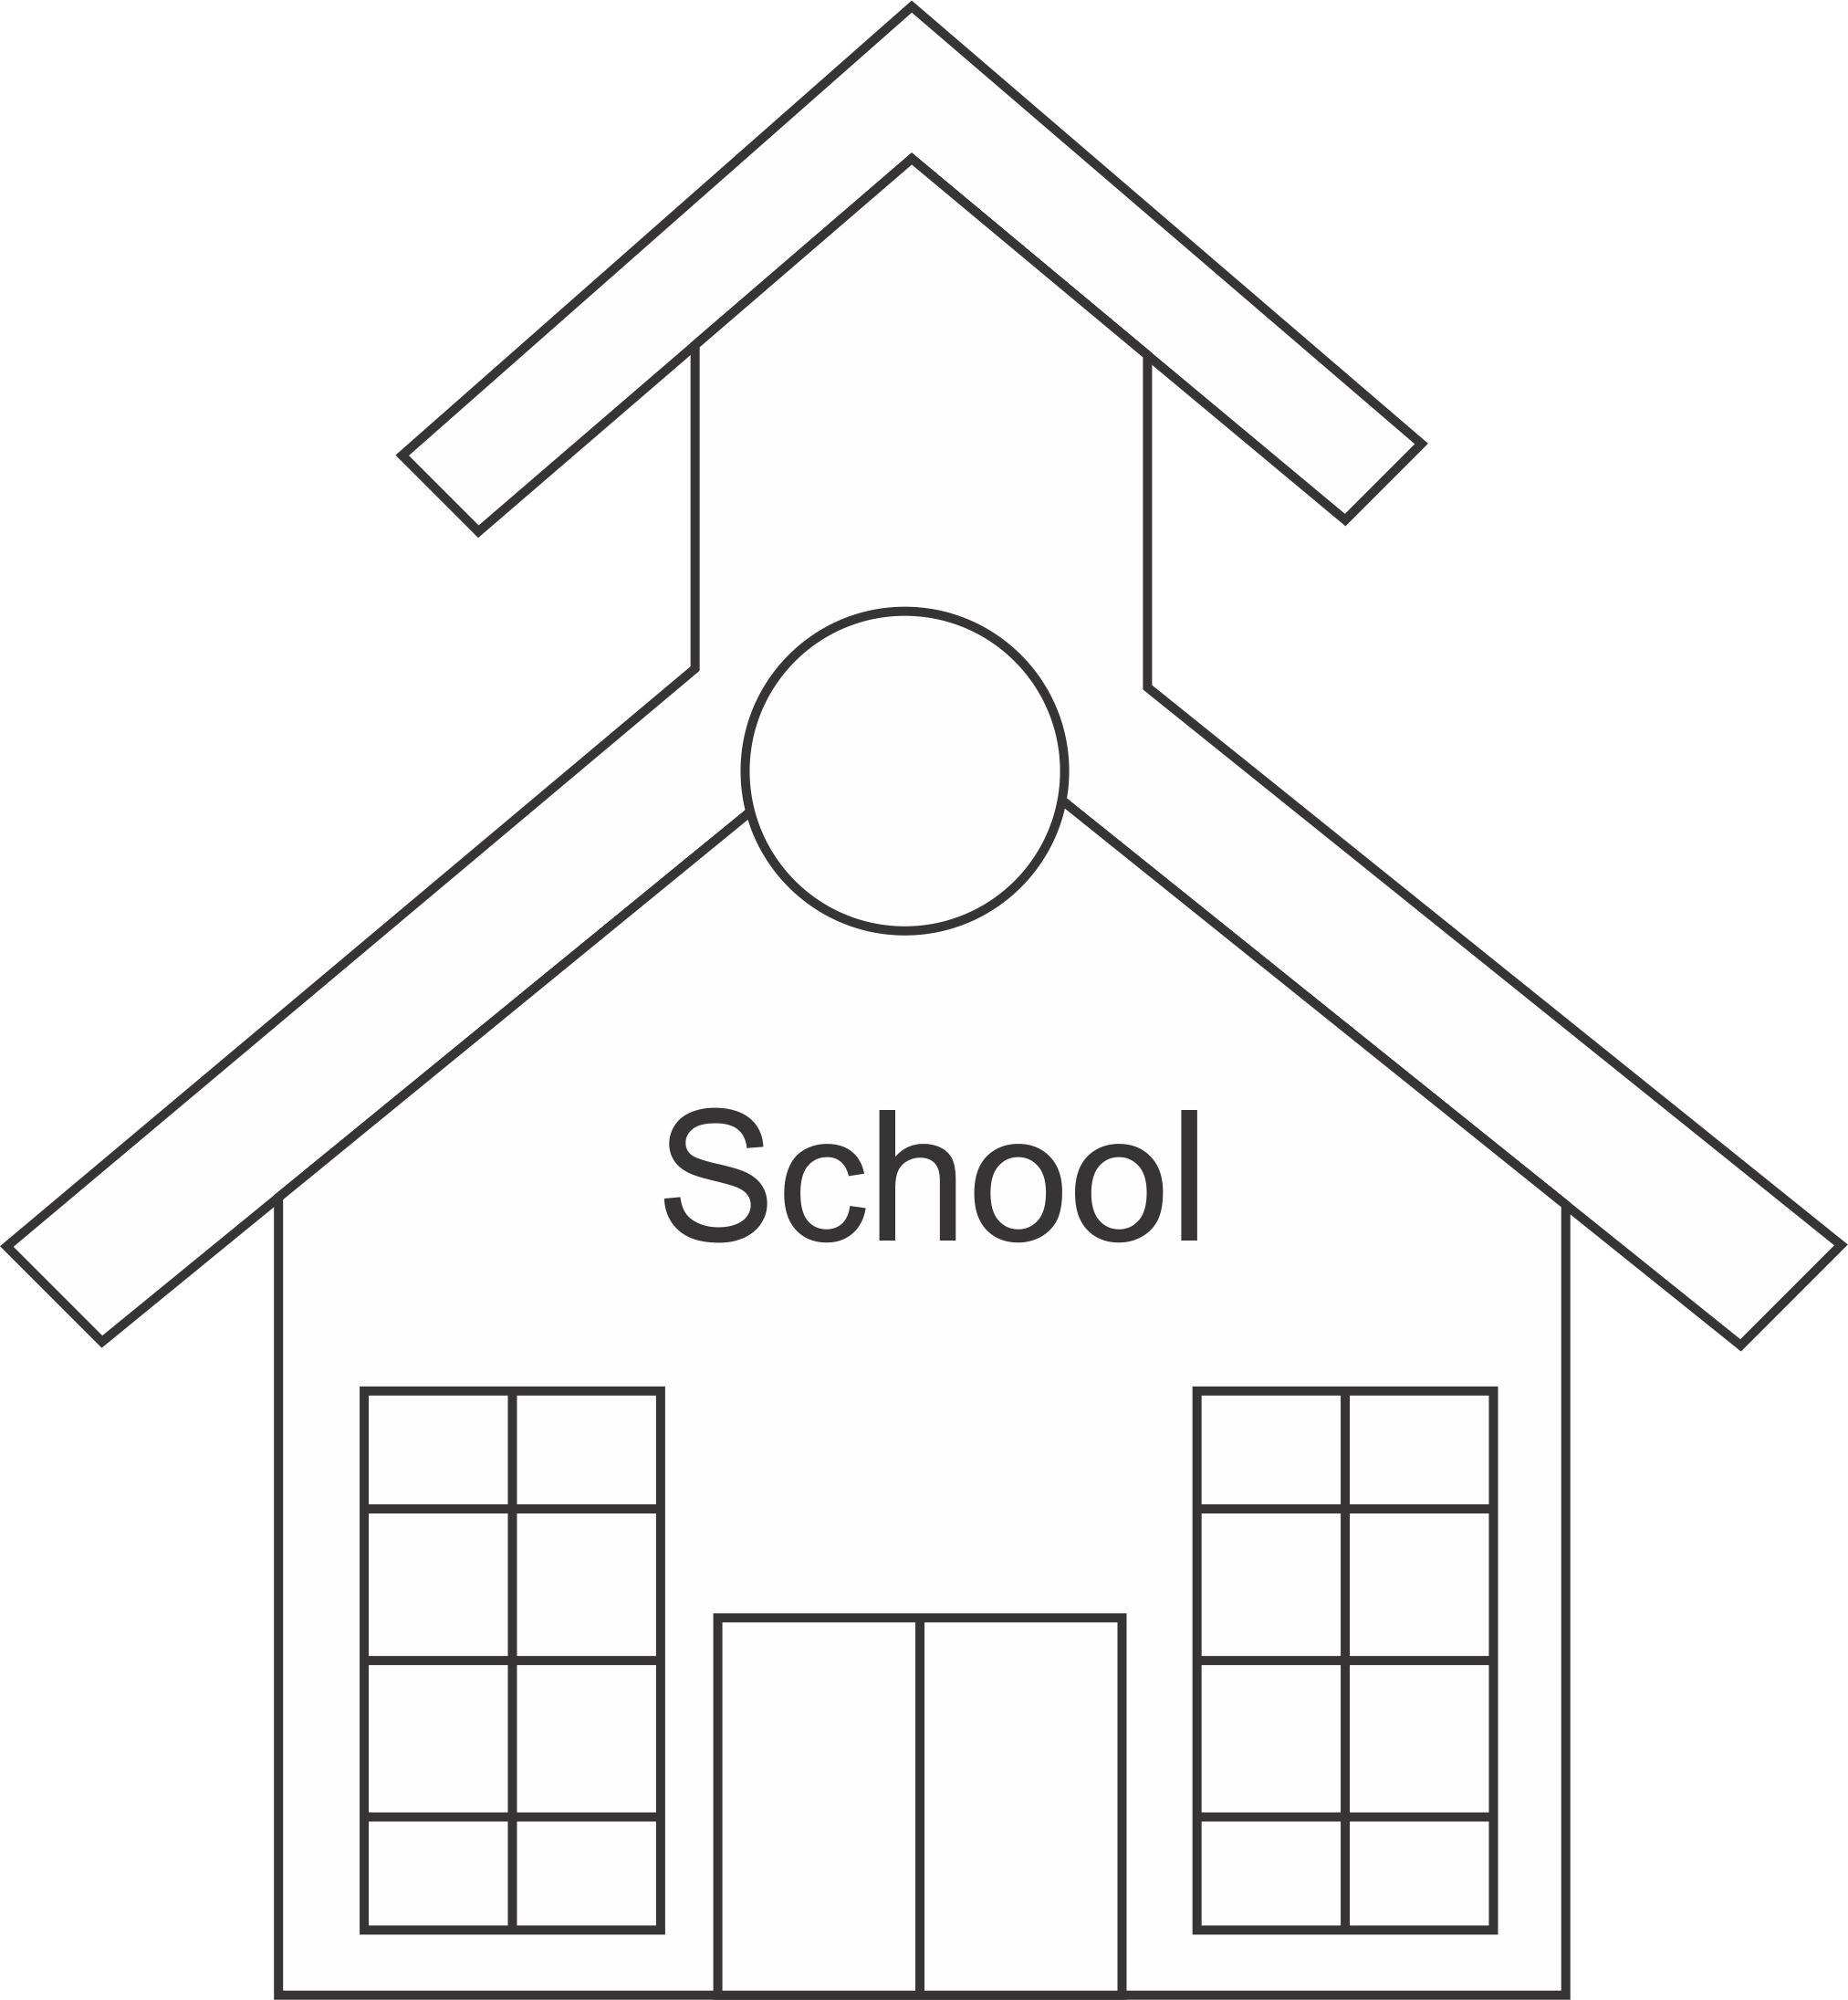 School clipart outline image 28+ Collection of School Clipart Black And White Png | High quality ... image